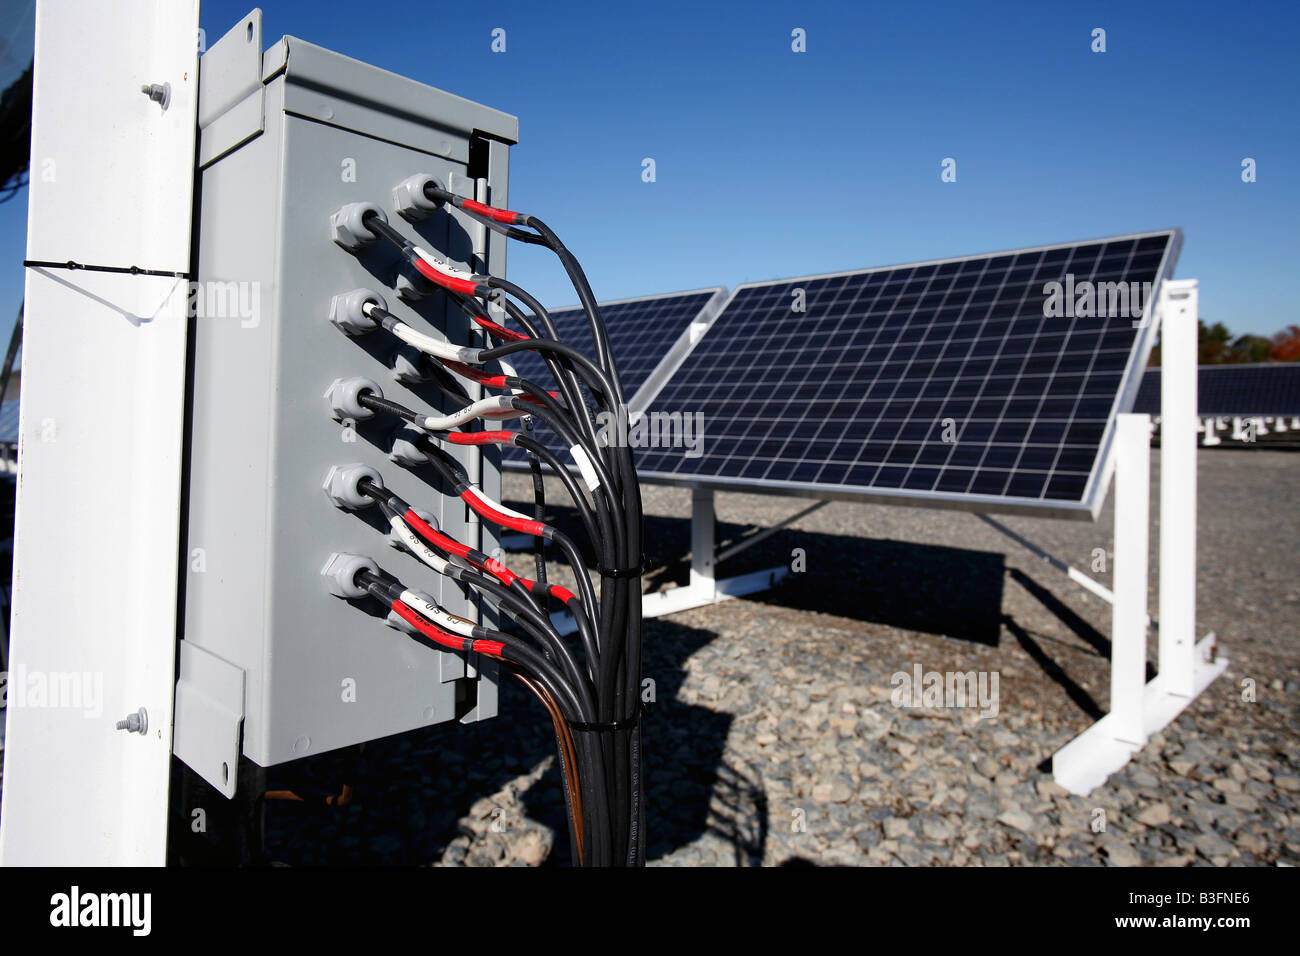 hight resolution of electrical wires enter a junction box on the site of a solar powered wiring box wiring electrical junction box electrical solar electric